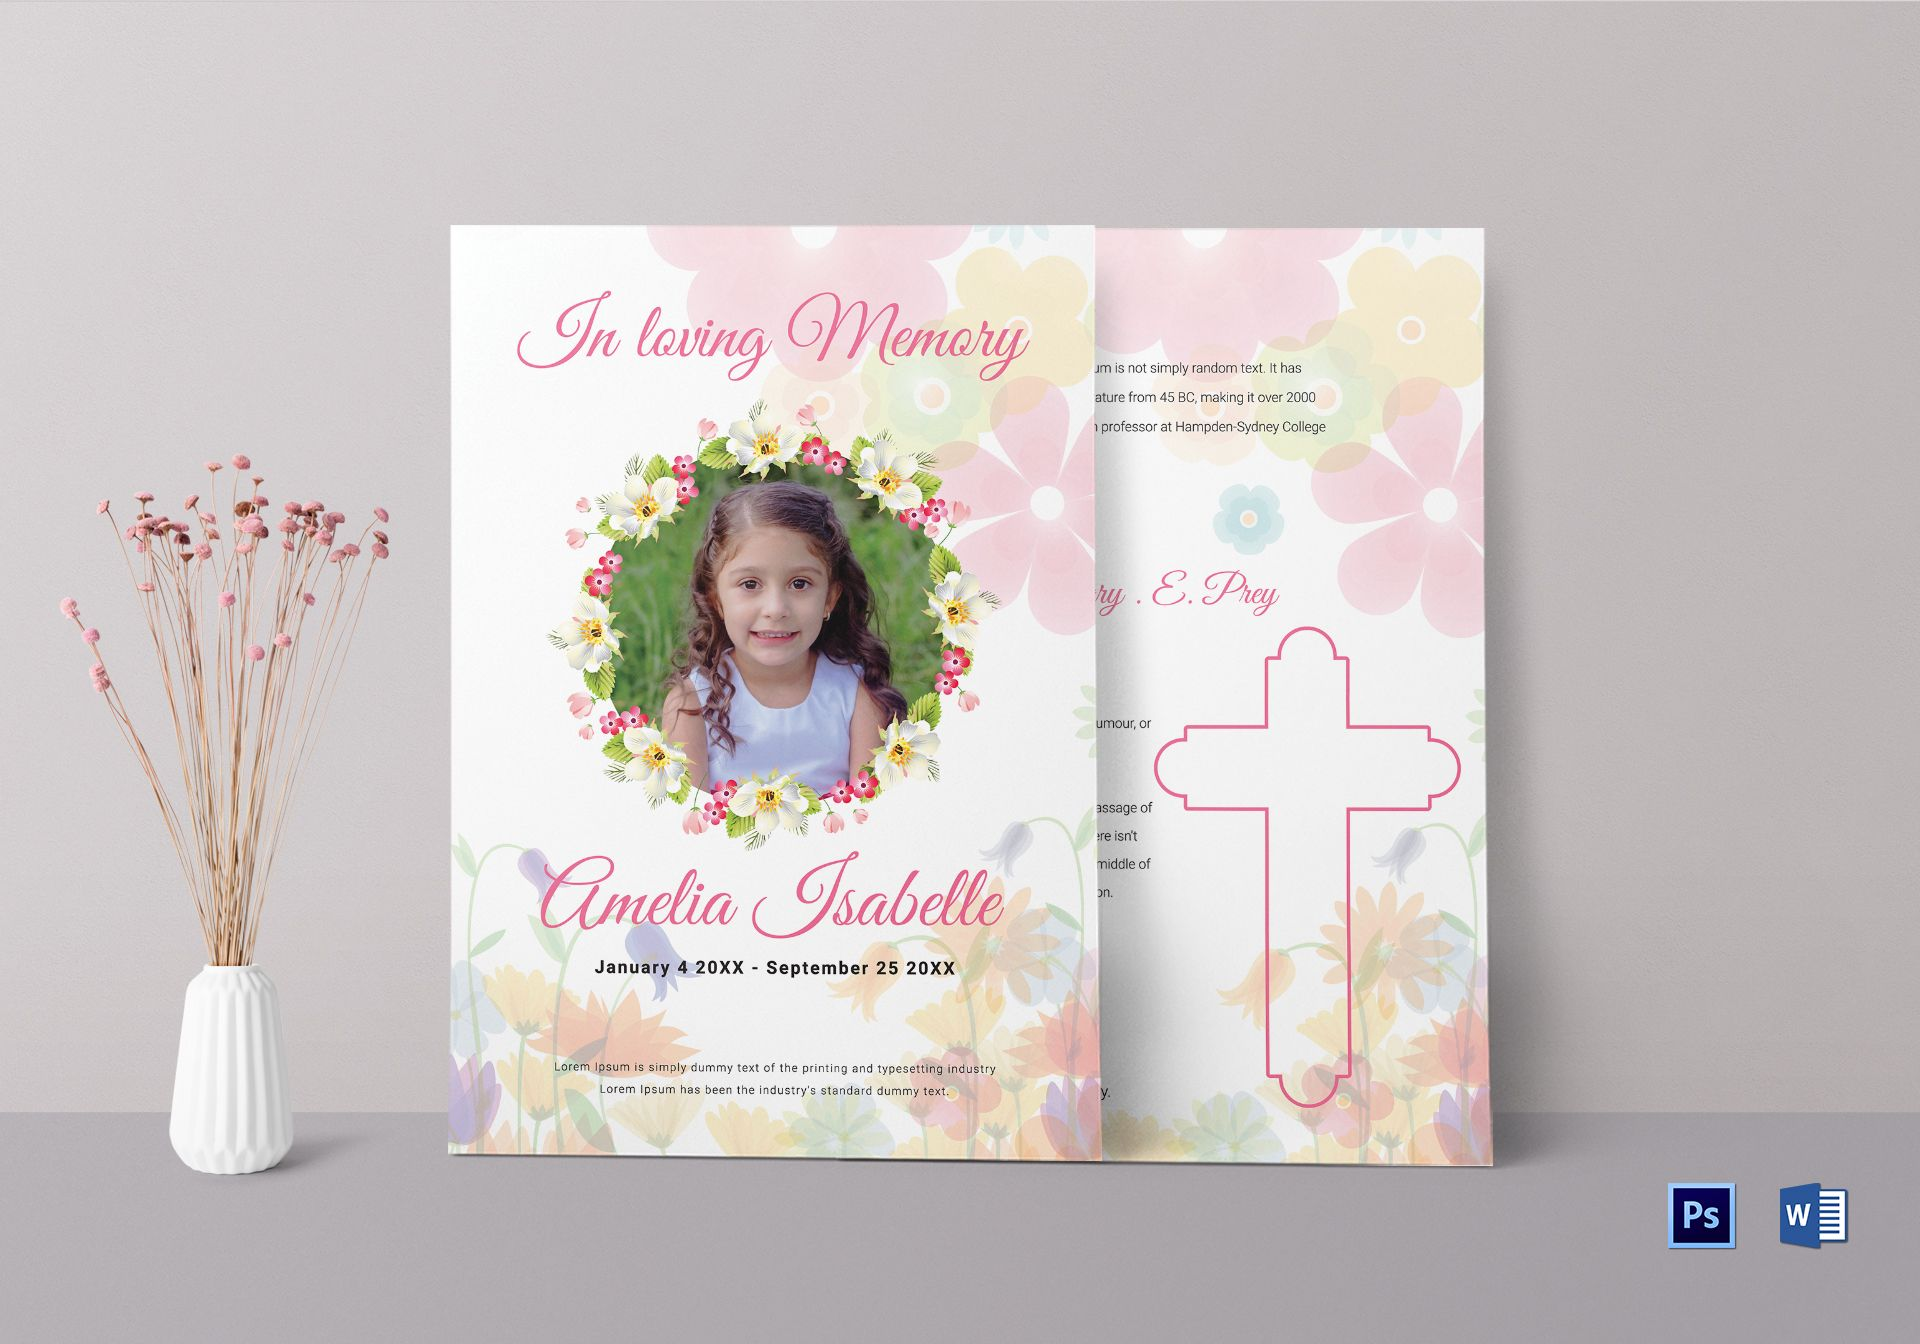 Obituary Funeral Templates For kids